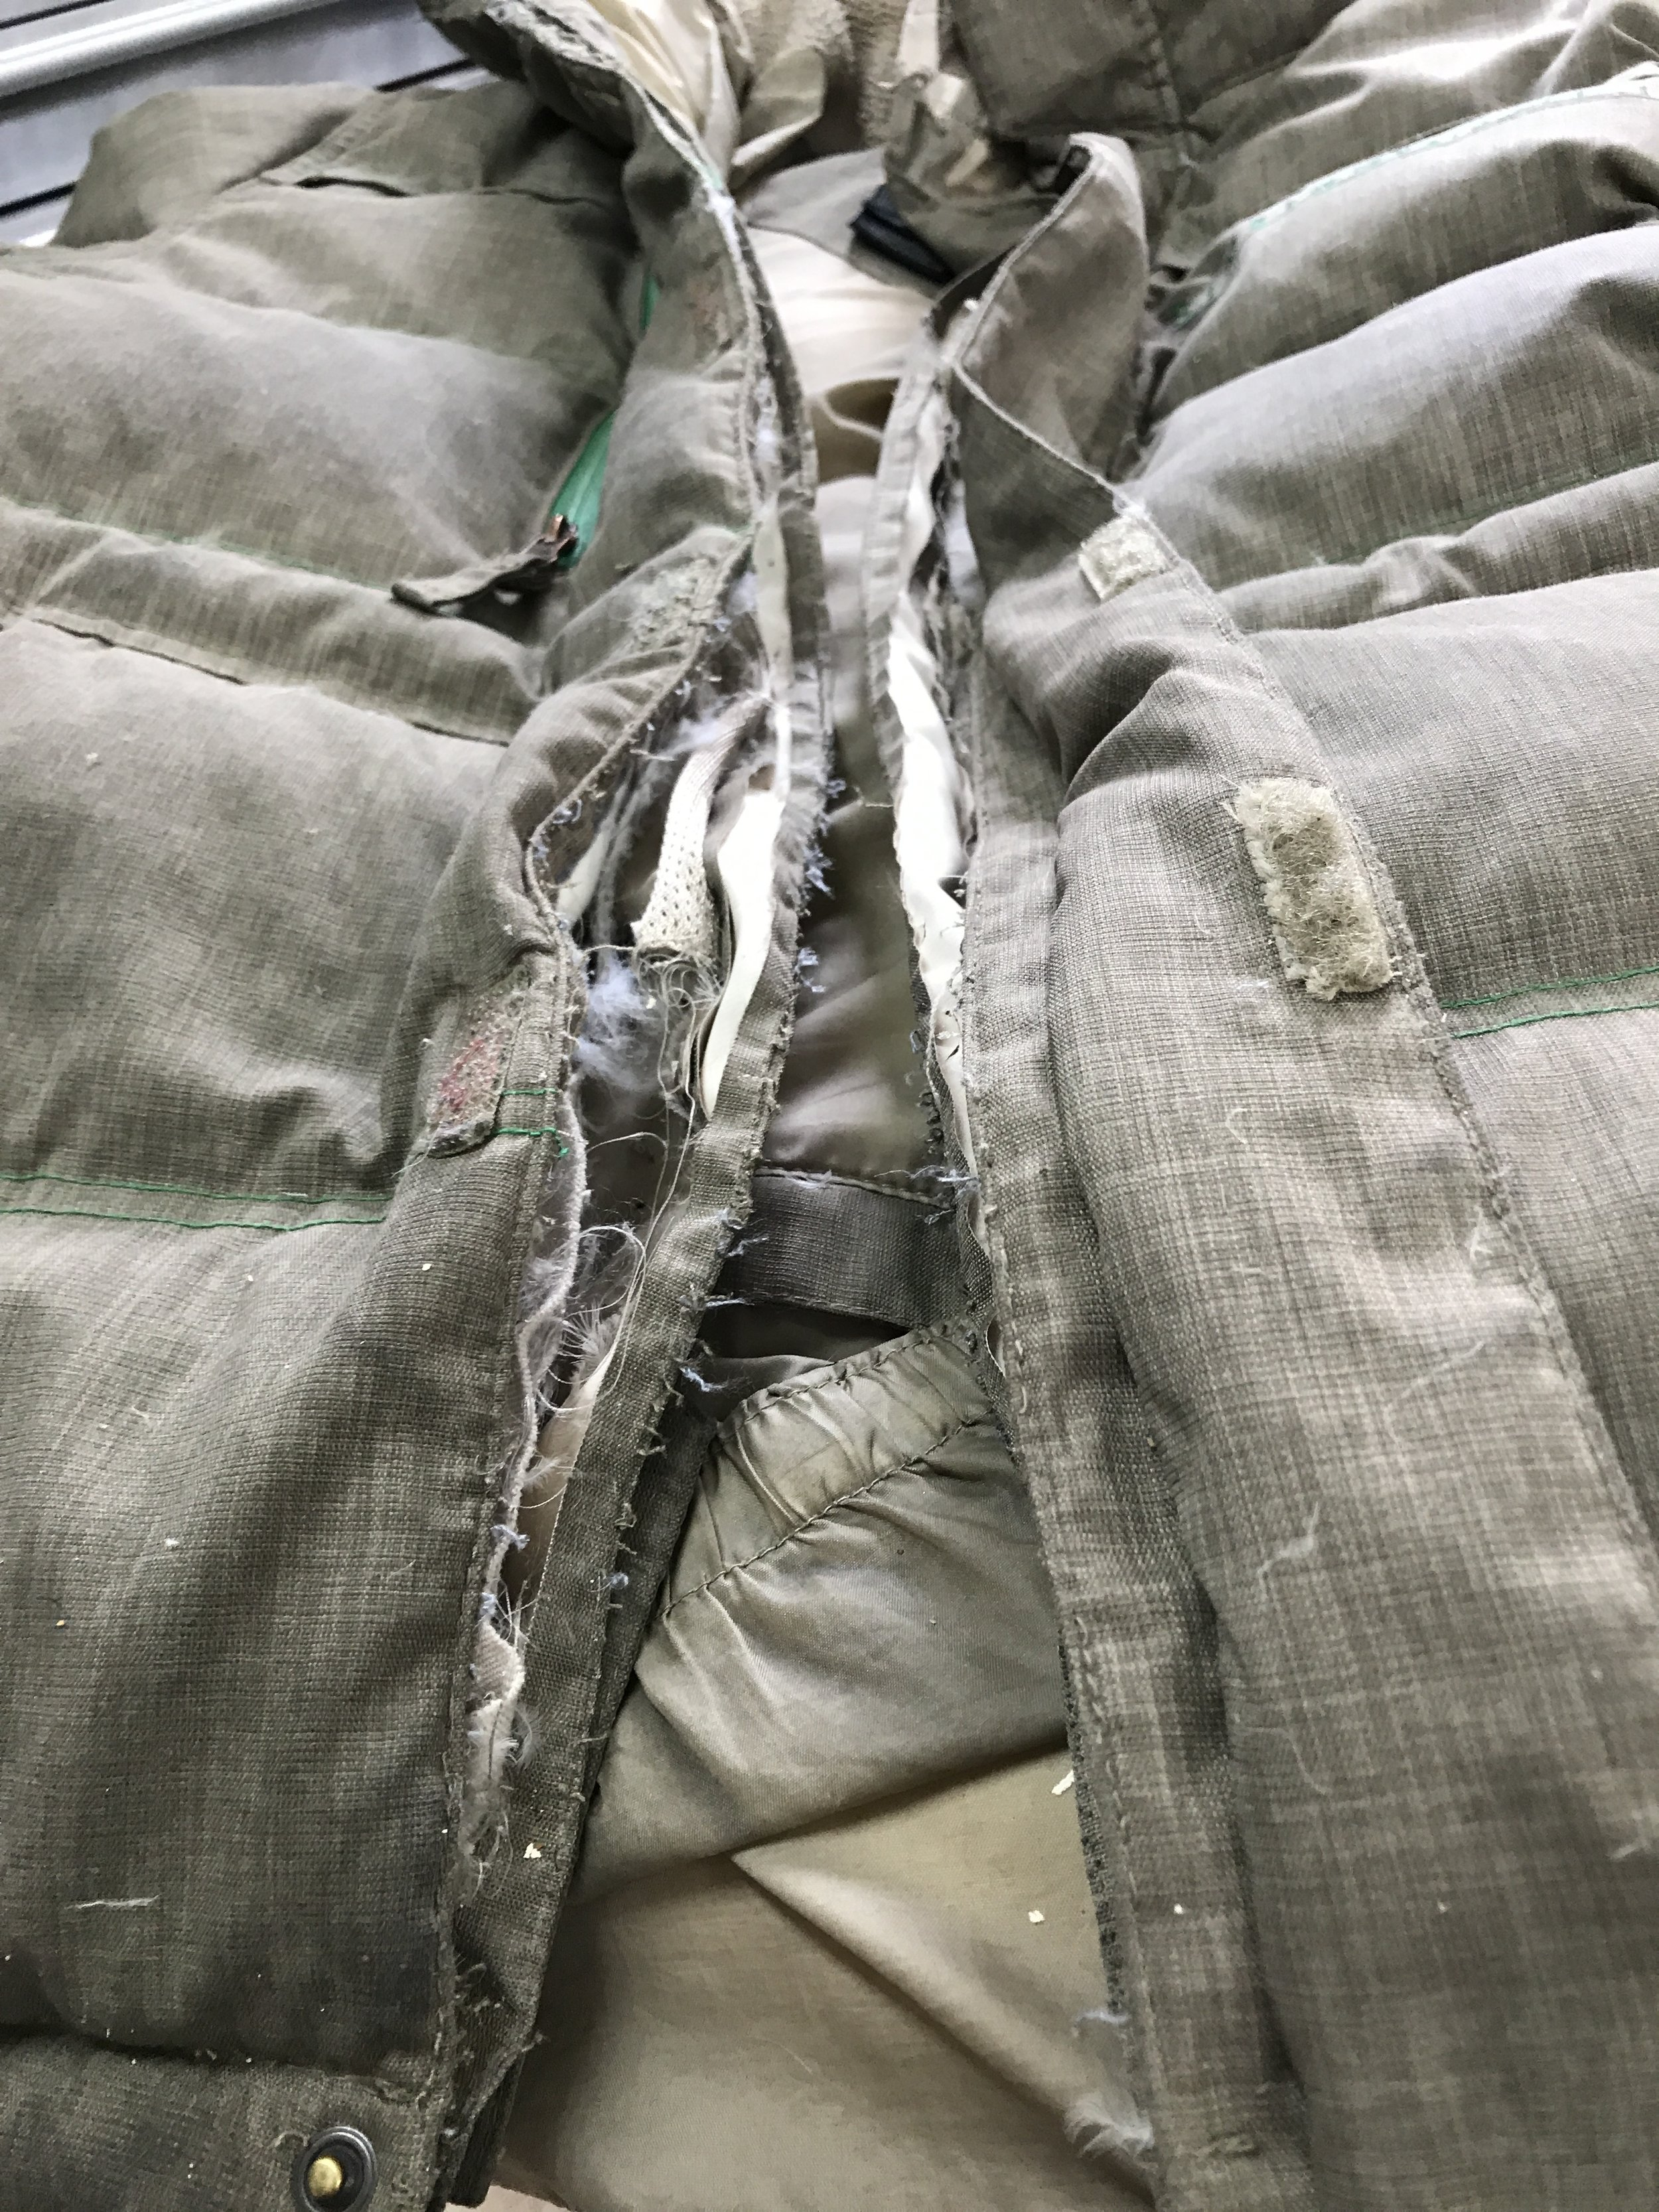 Zipper replacement is an involved process!